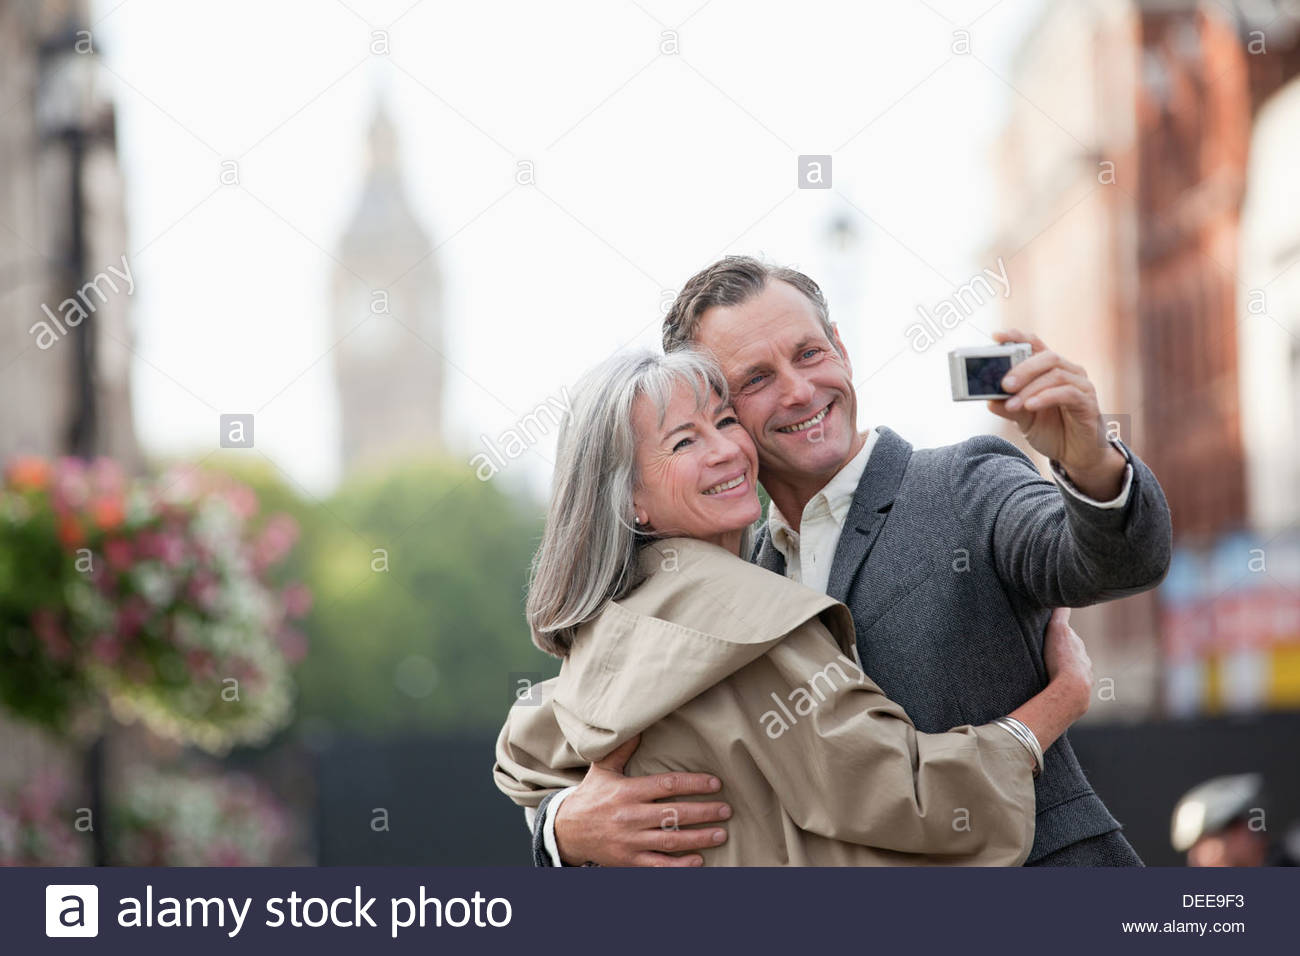 Couple taking self-portrait with digital camera in city - Stock Image